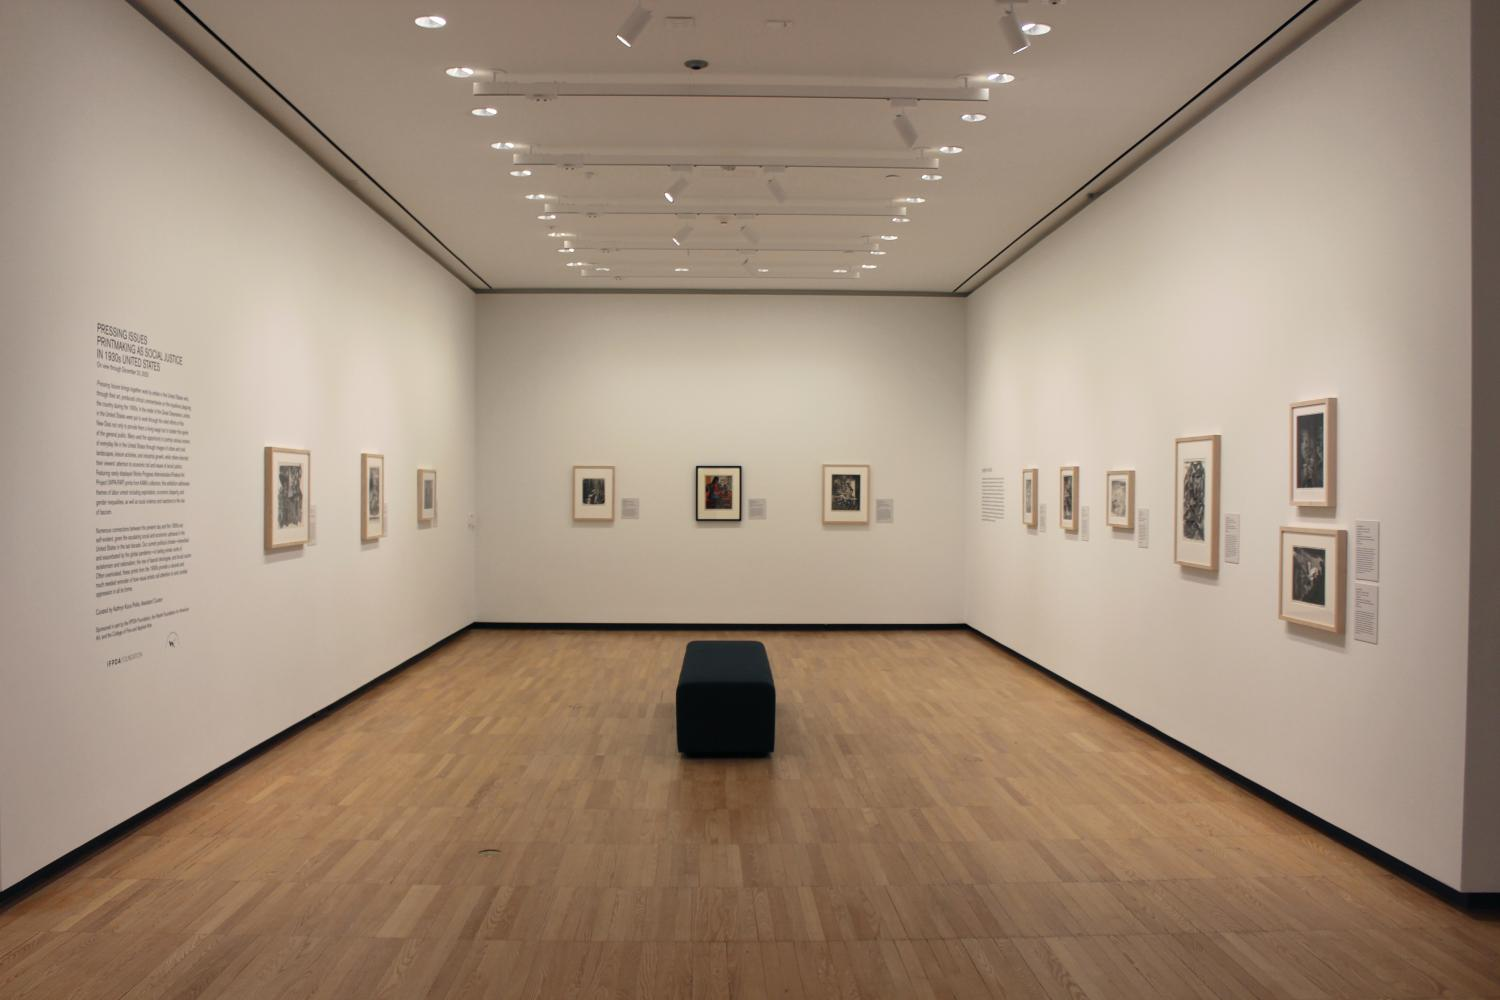 Gallery view of a three-sided space with seating in the middle. The walls are a clean white with framed prints hung on each wall. To the left is title text and the curator's essay for Pressing Issues.